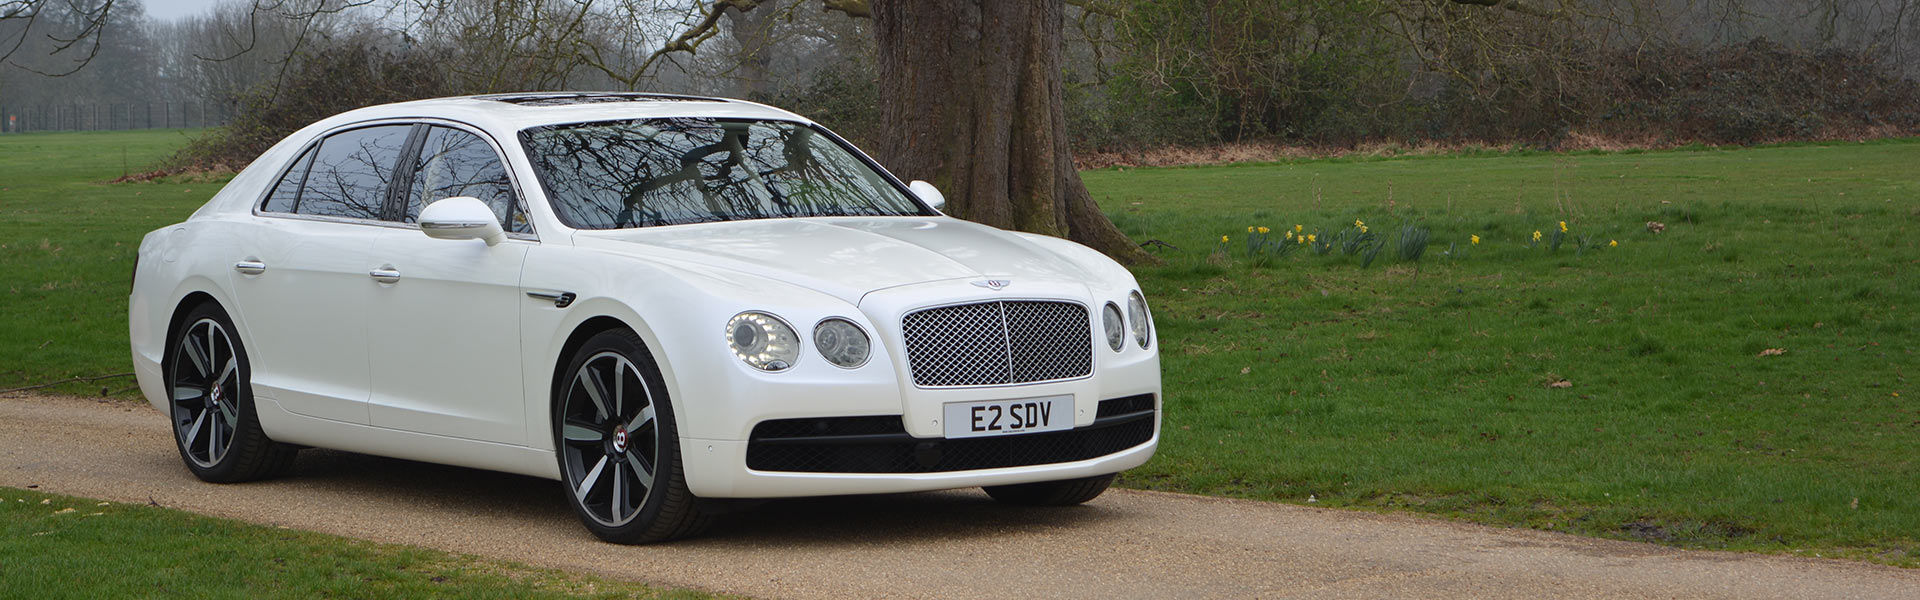 Bentley hire London